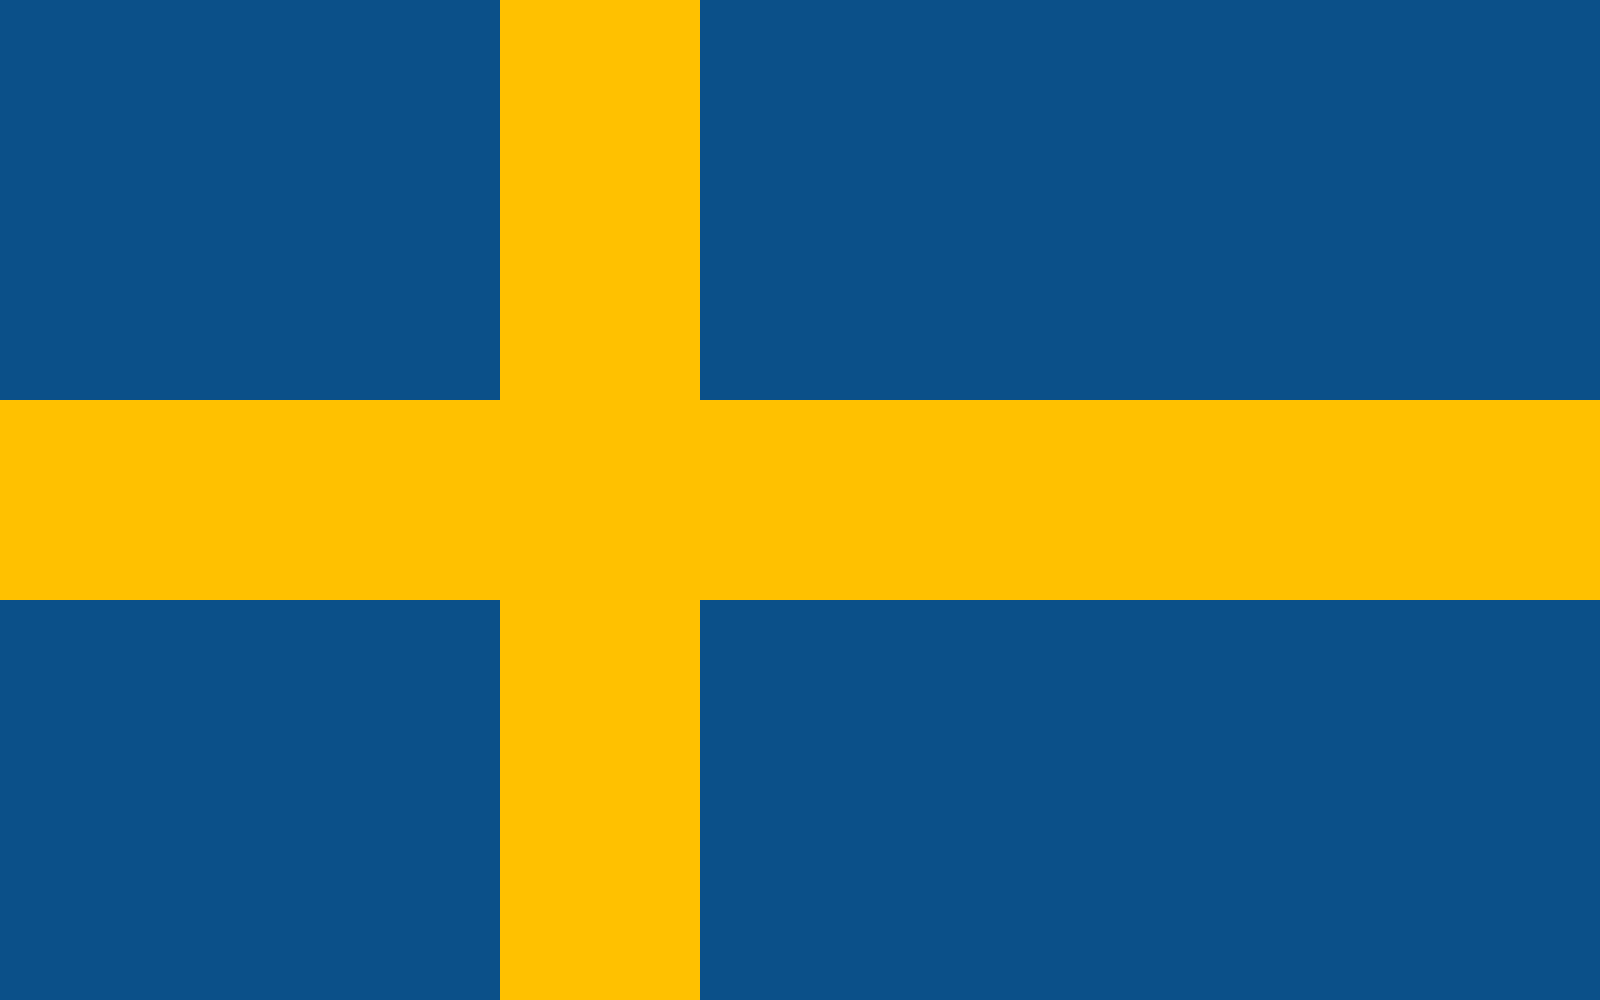 Picture of Swedish flag